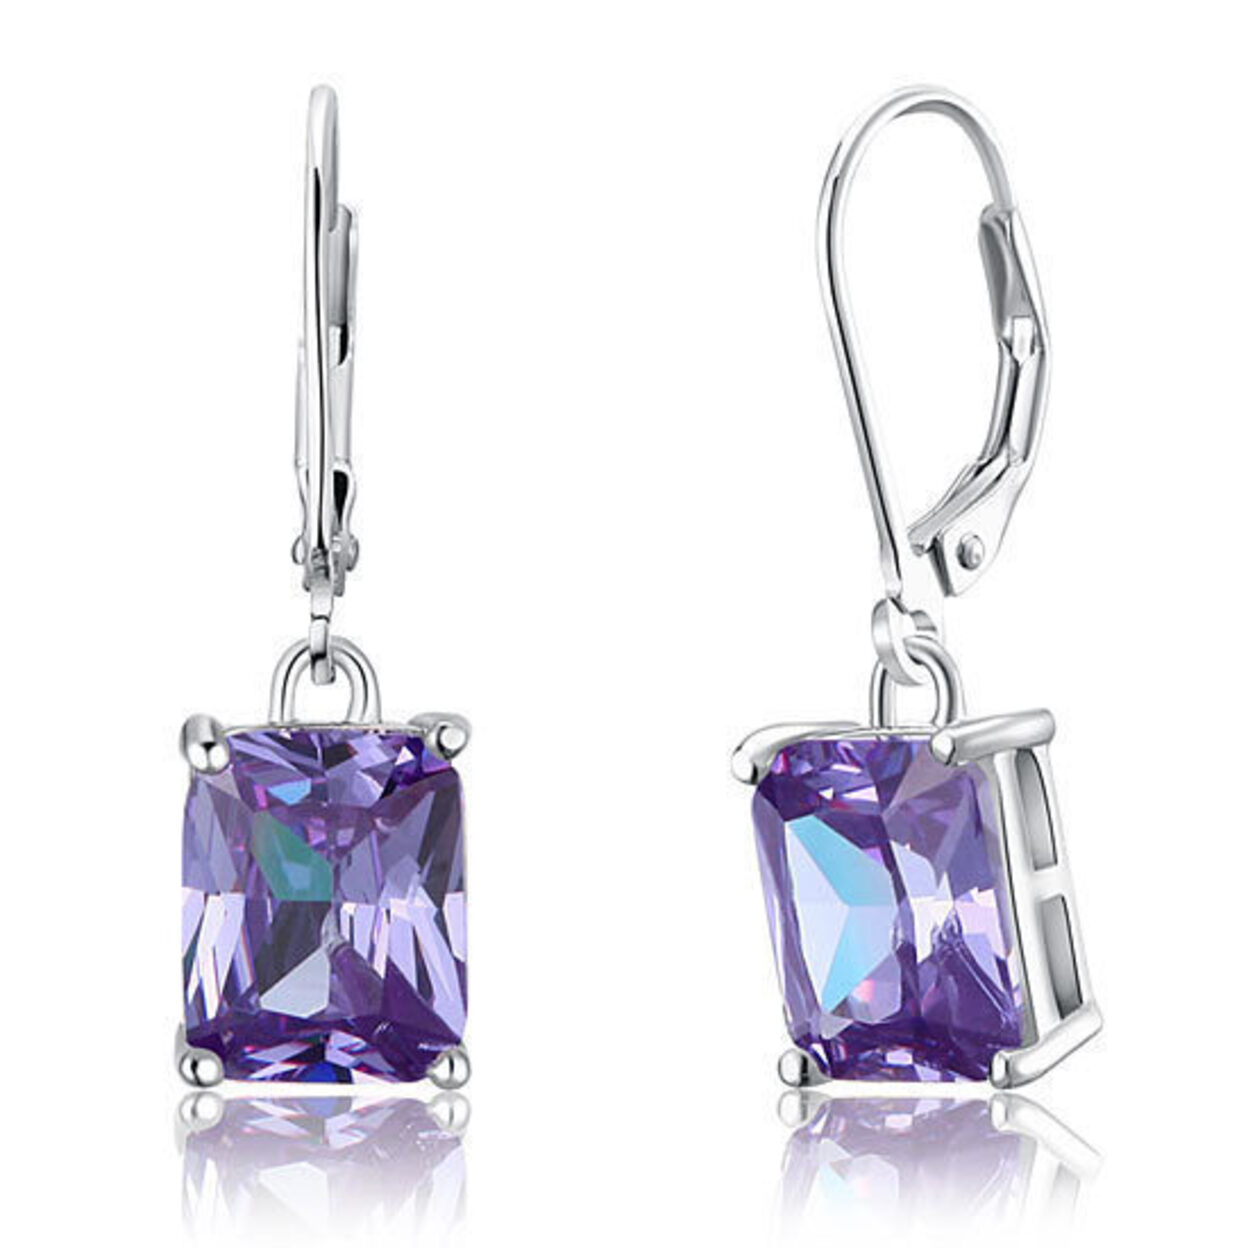 4 Carat 925 Sterling Silver Dangle Purple Earrings